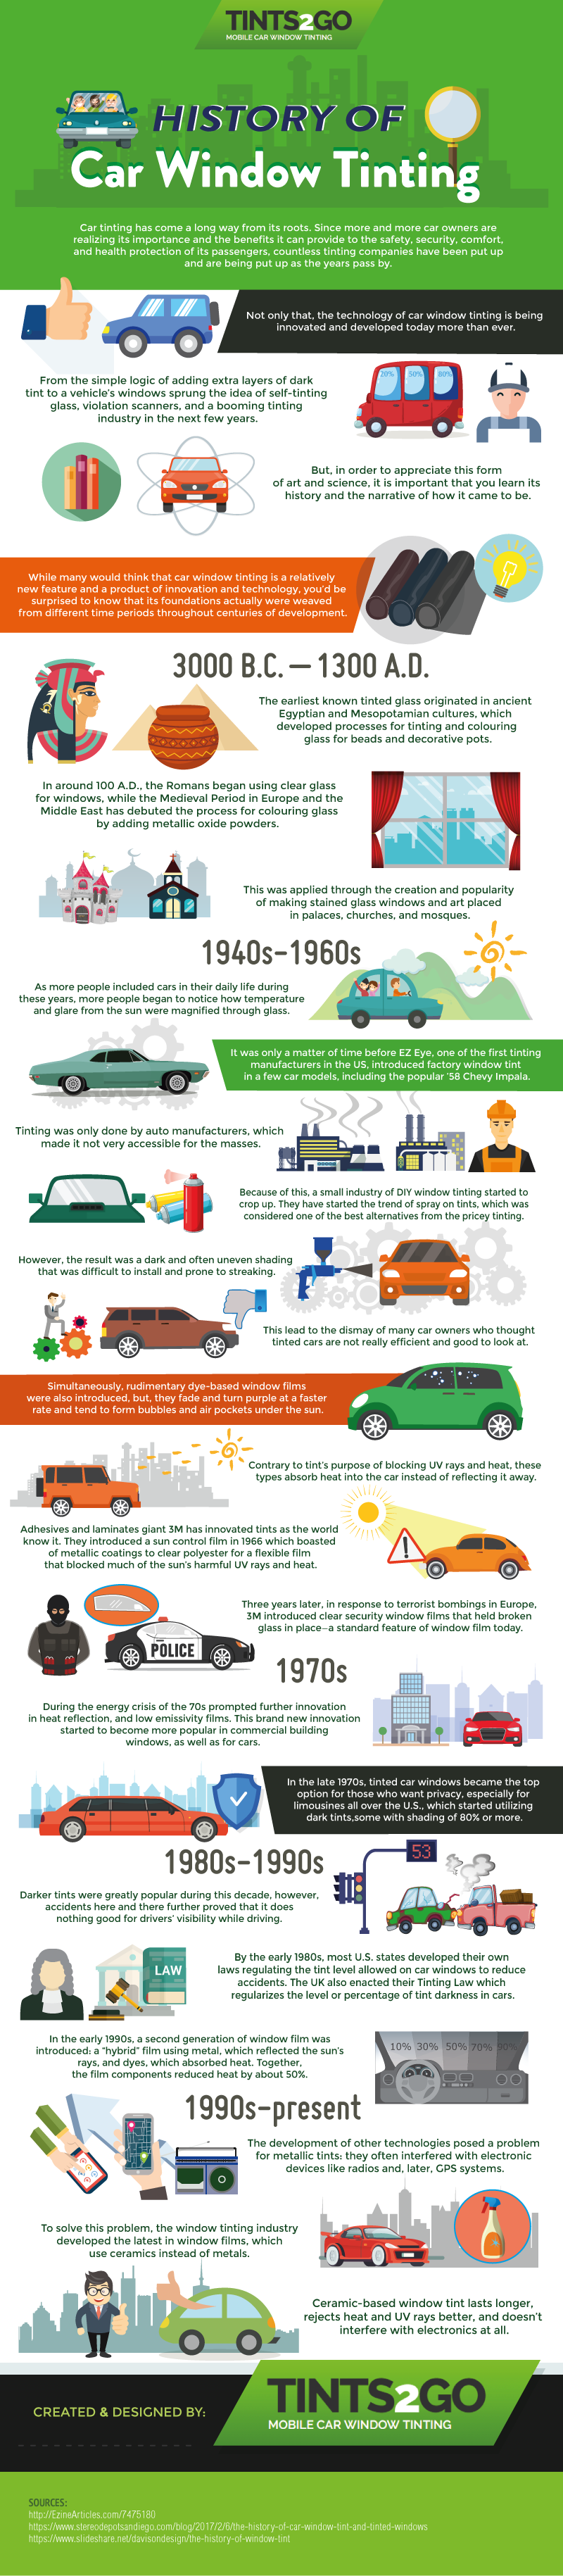 Car Window Tinting: Historical and Future Perspective - Infographic